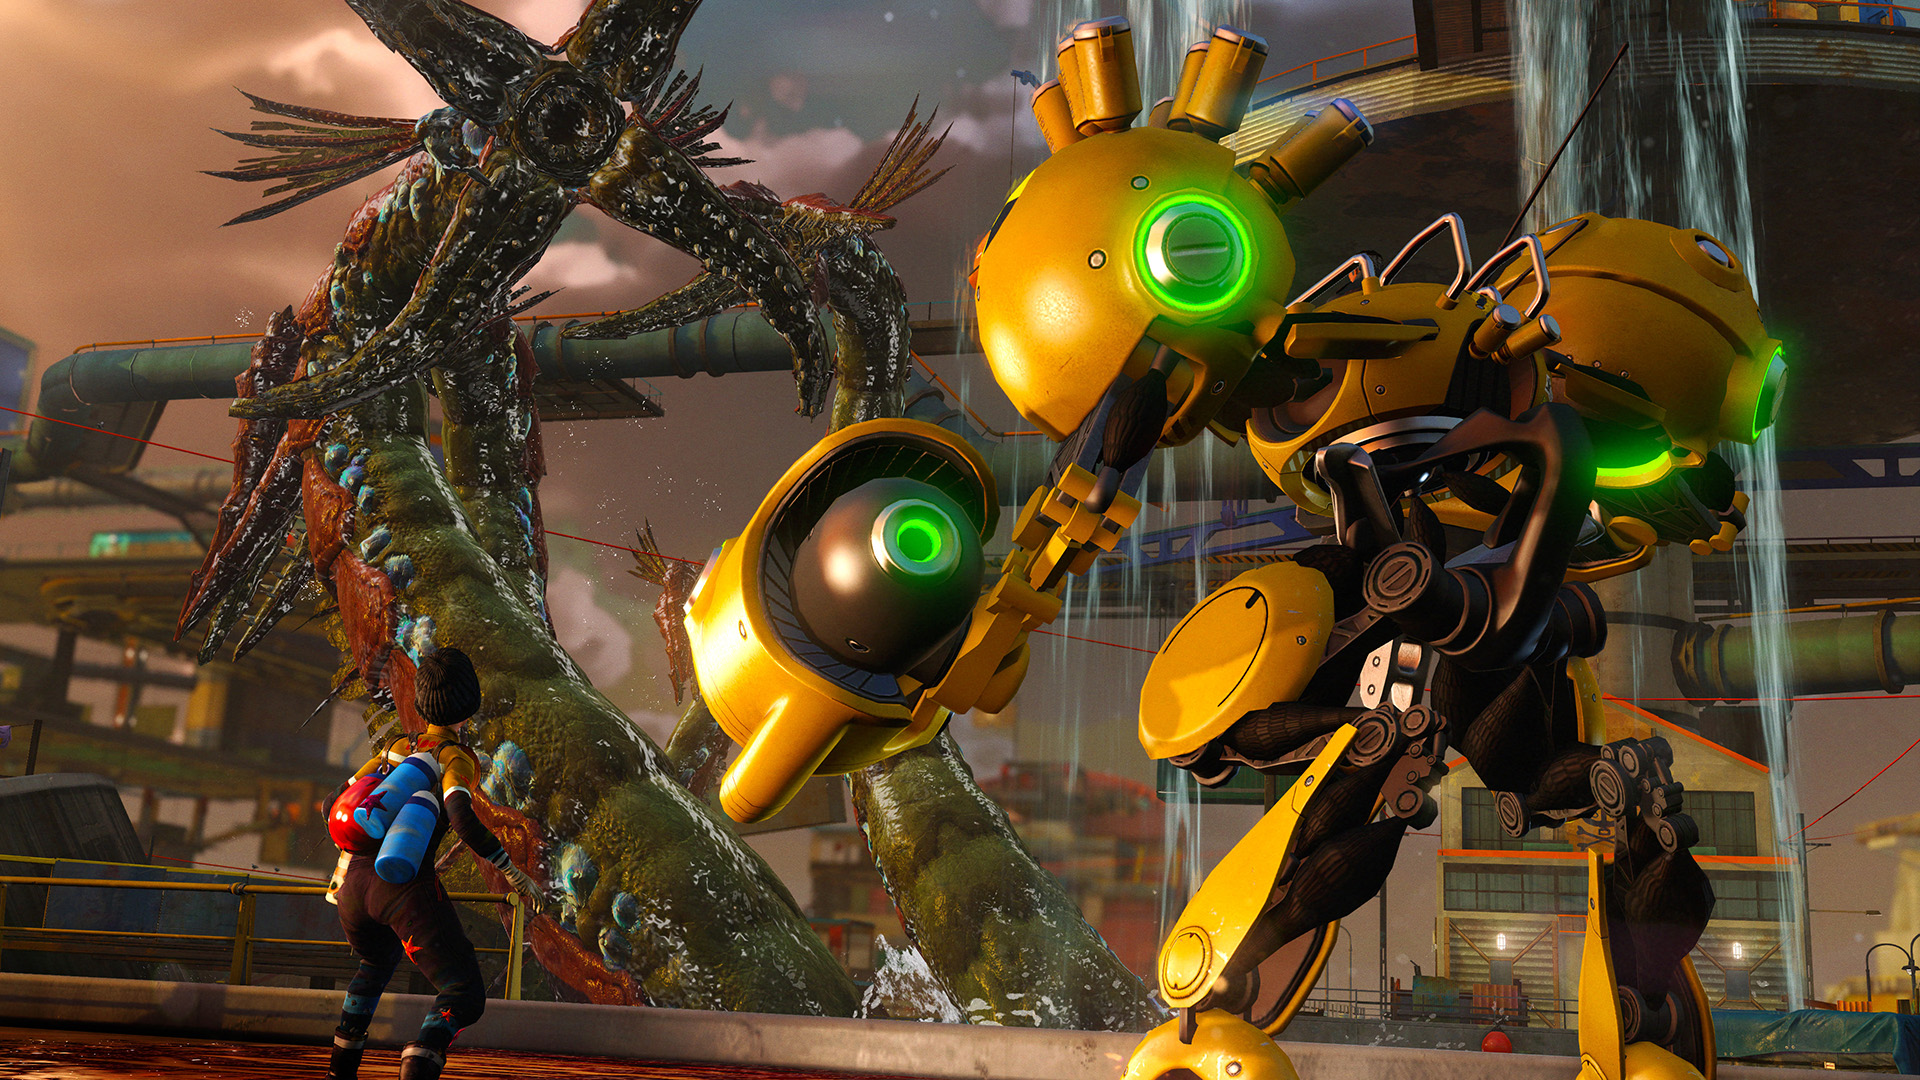 Big monsters, big robots and big guns in Sunset Overdrive